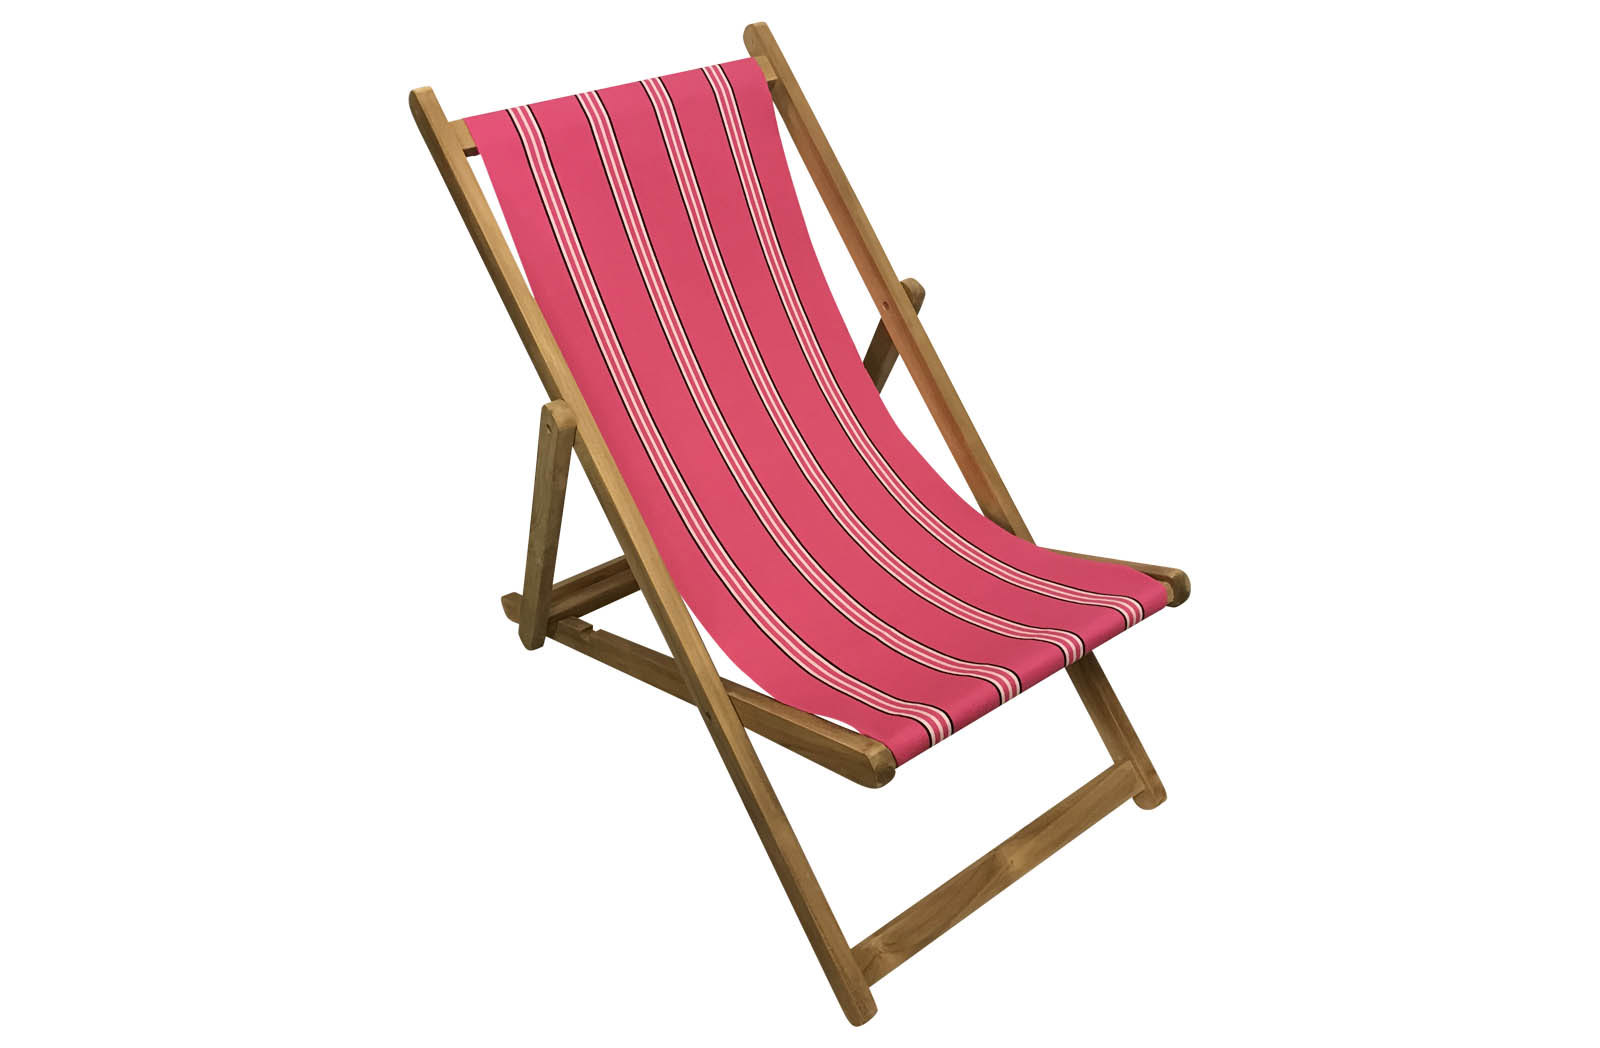 Cerise Pink Deckchairs | Wooden Folding Deck Chairs Racquets Stripes